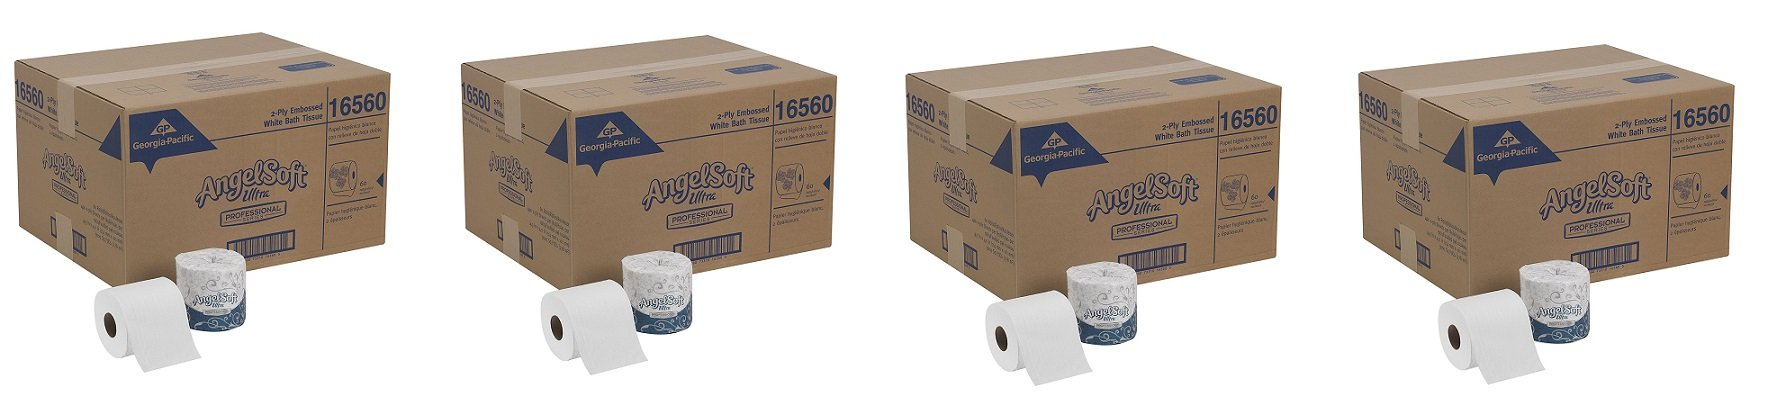 Georgia-Pacific Angel Soft Ultra Professional Series, 16560, White, 2-Ply Premium Embossed Toilet Paper, 4.05'' Length x 4.5'' Width (Case of 60 Rolls, 400 Sheets Per Roll) (4-(Case of 60 Rolls))